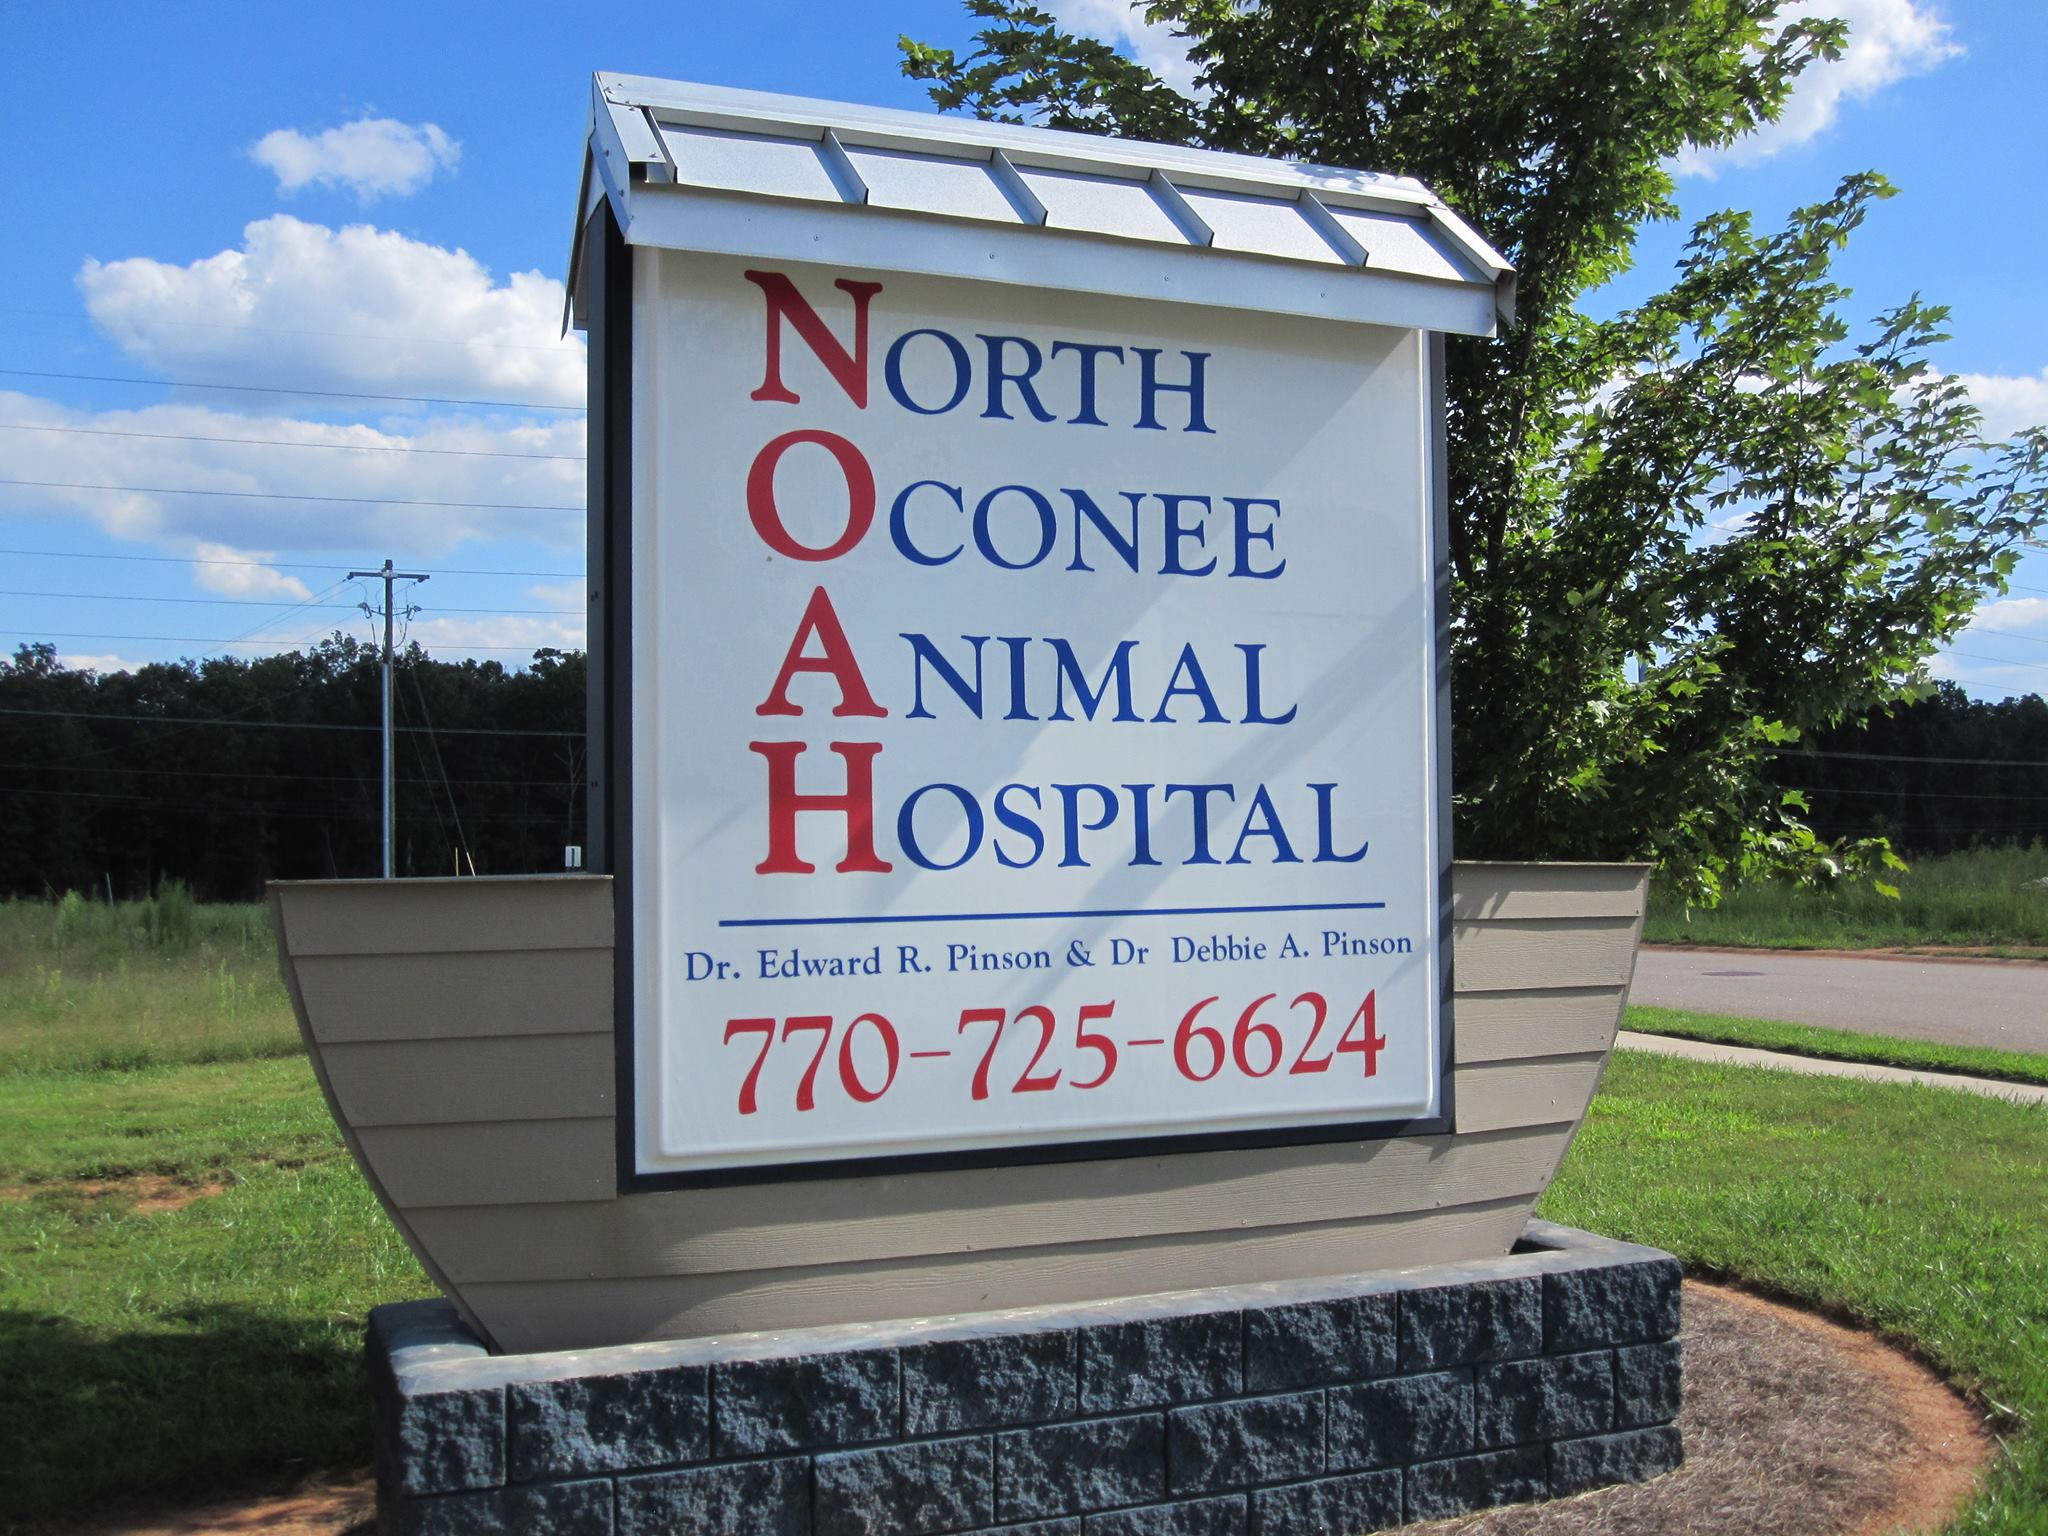 North Oconee Animal Hospital